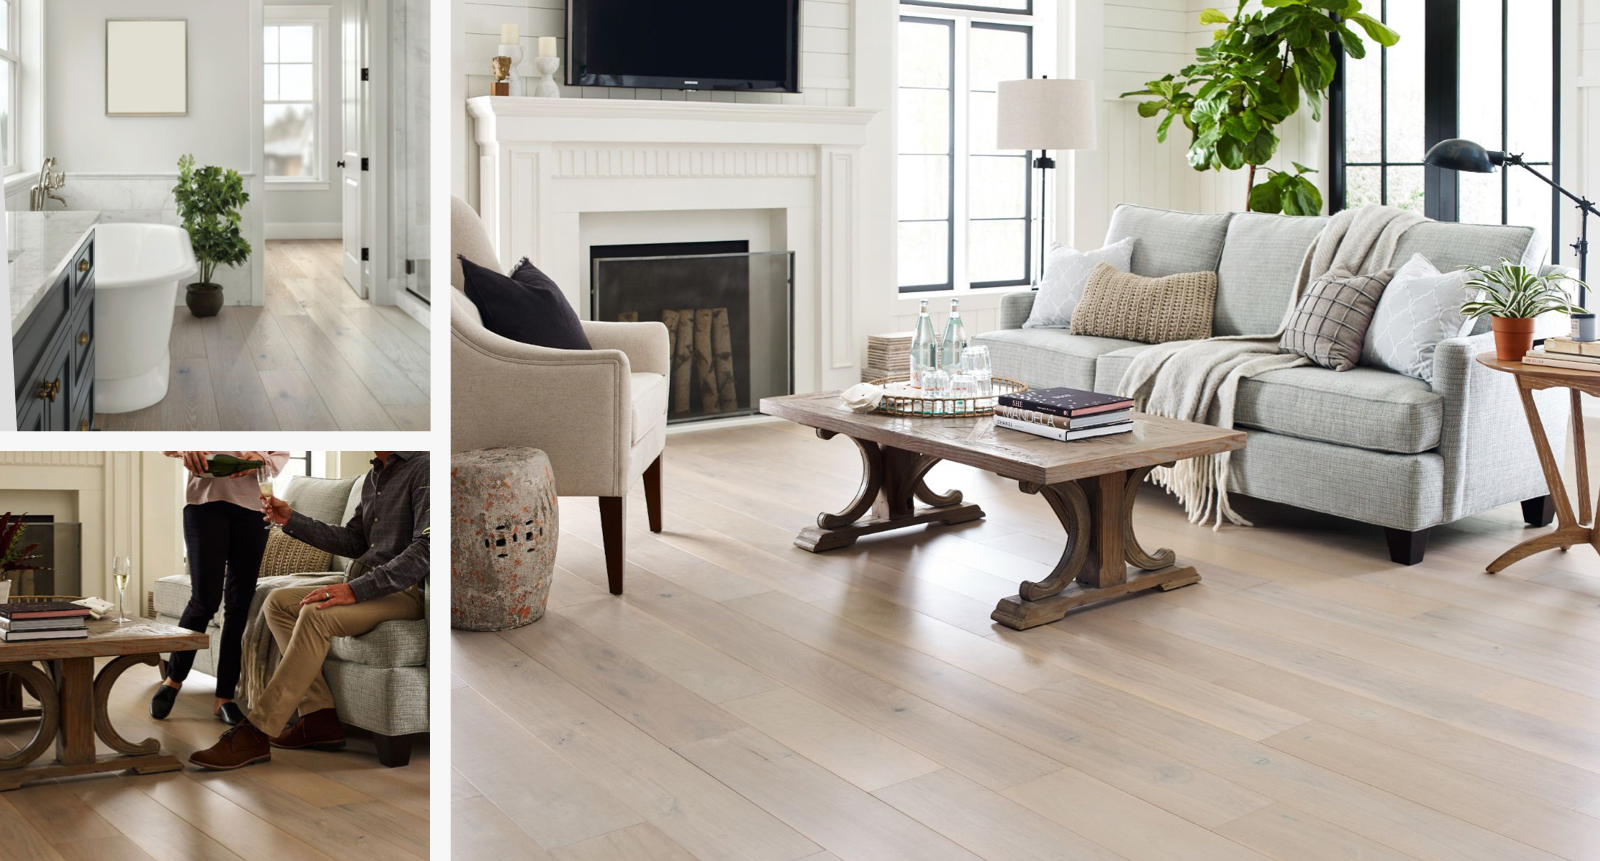 Floorte waterproof hardwood flooring for your home | Tom January Floors